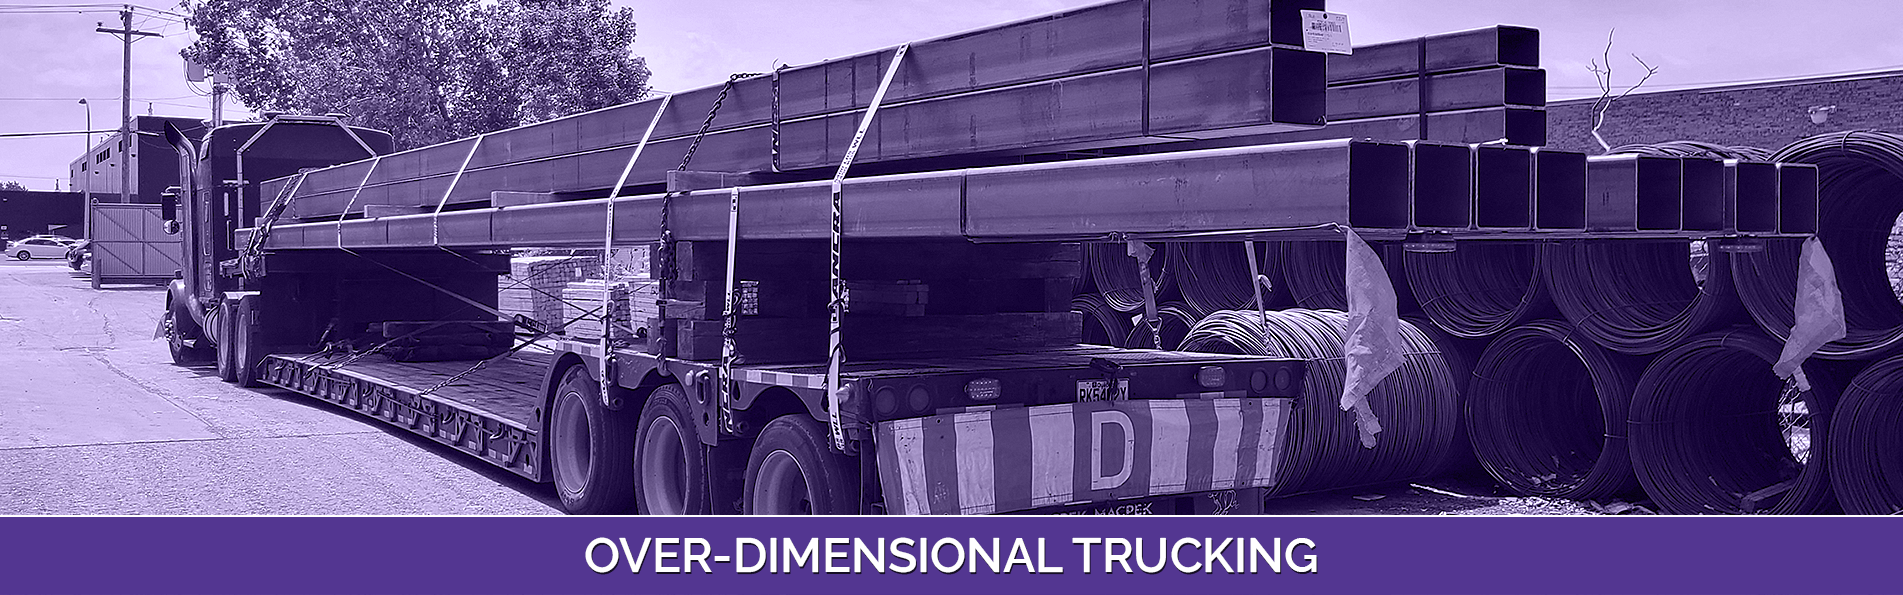 Over-dimensional Trucking